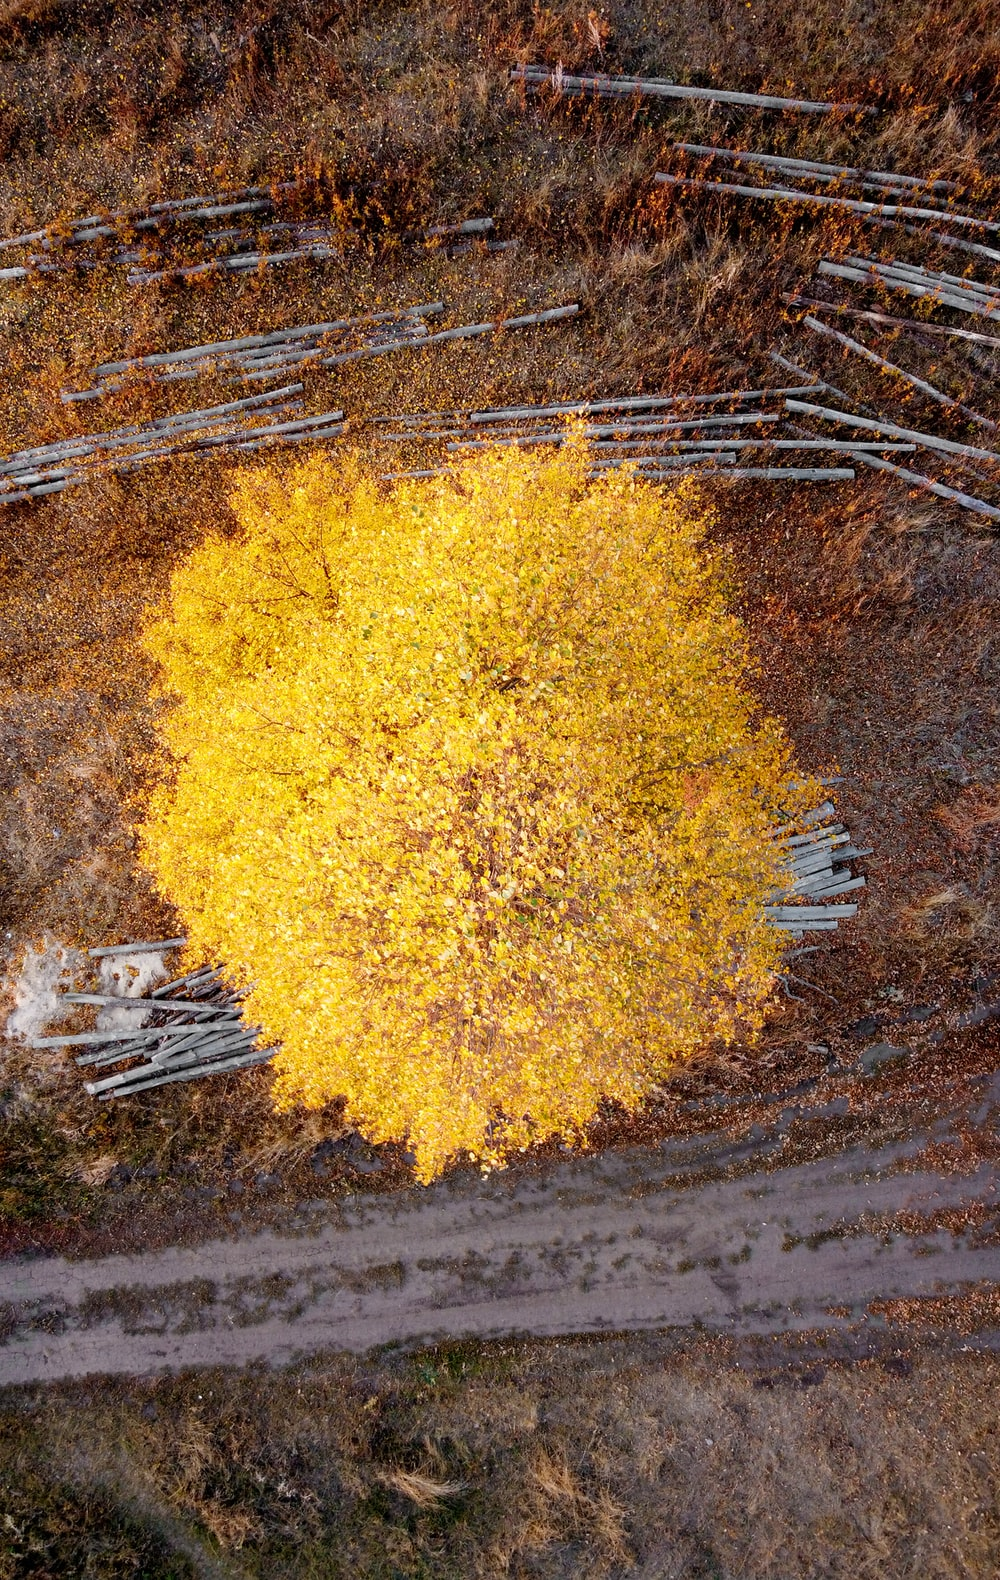 yellow leaves on brown soil